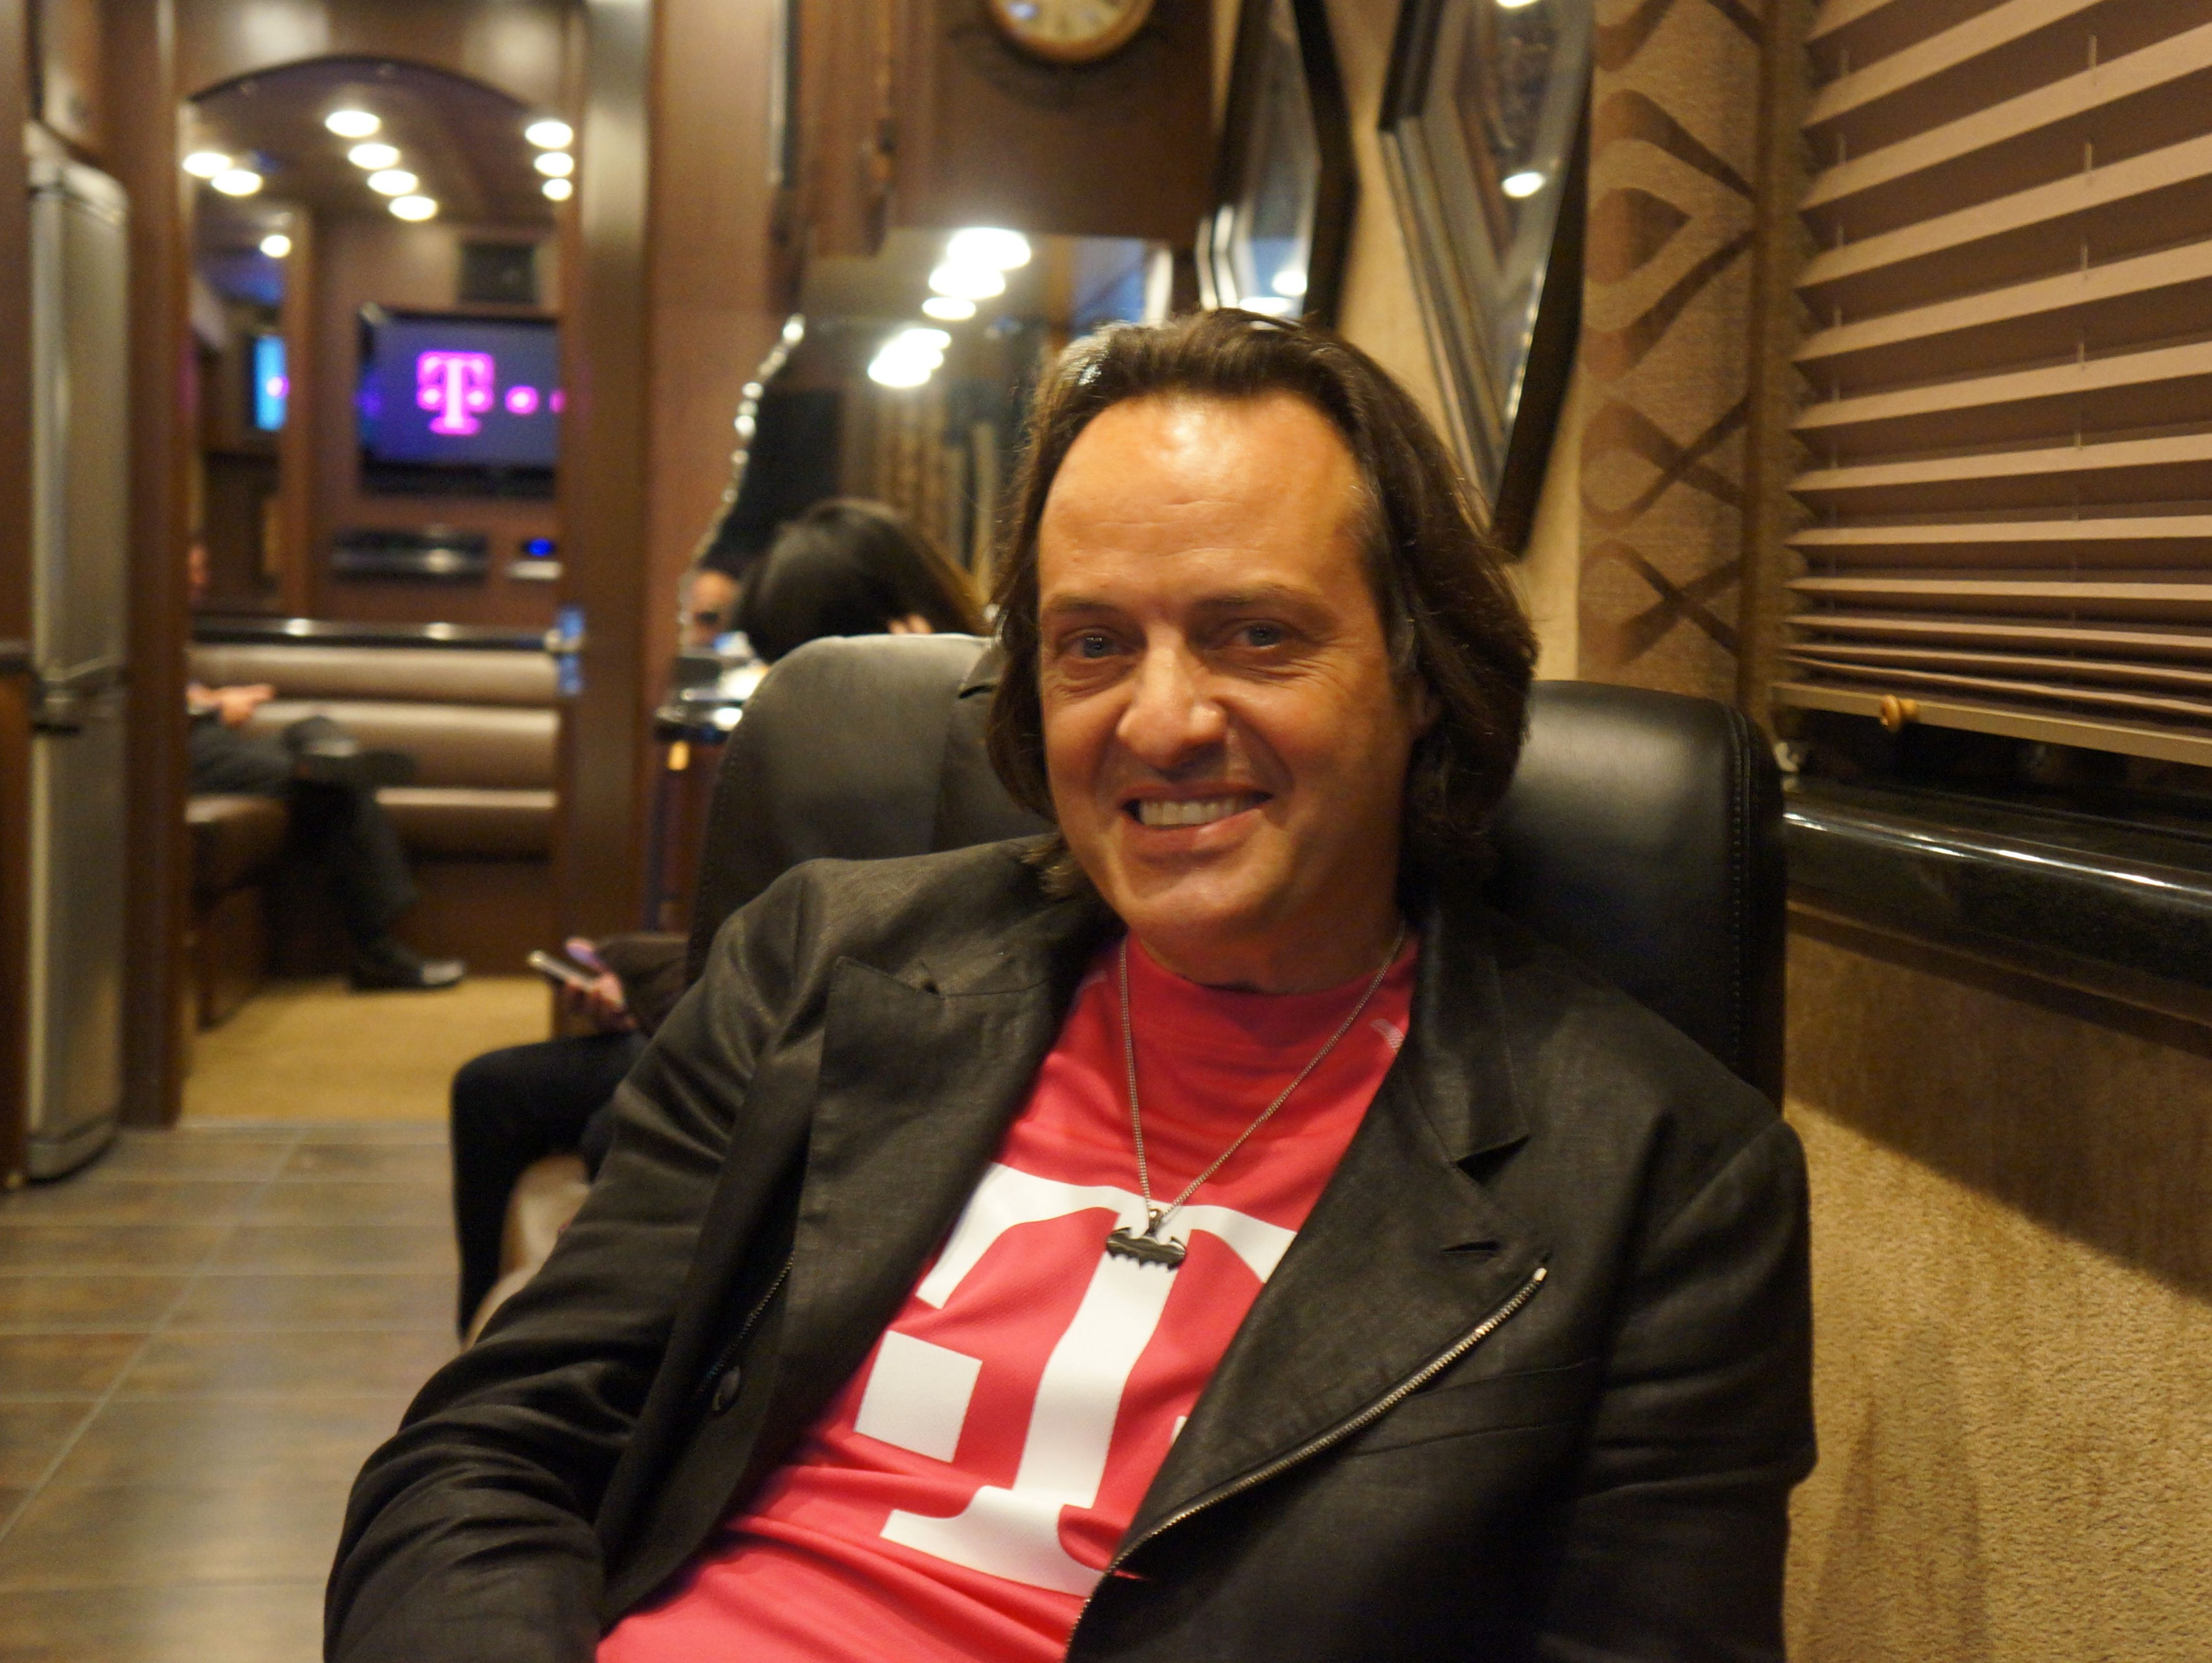 John Legere, T-Mobile CEO, says